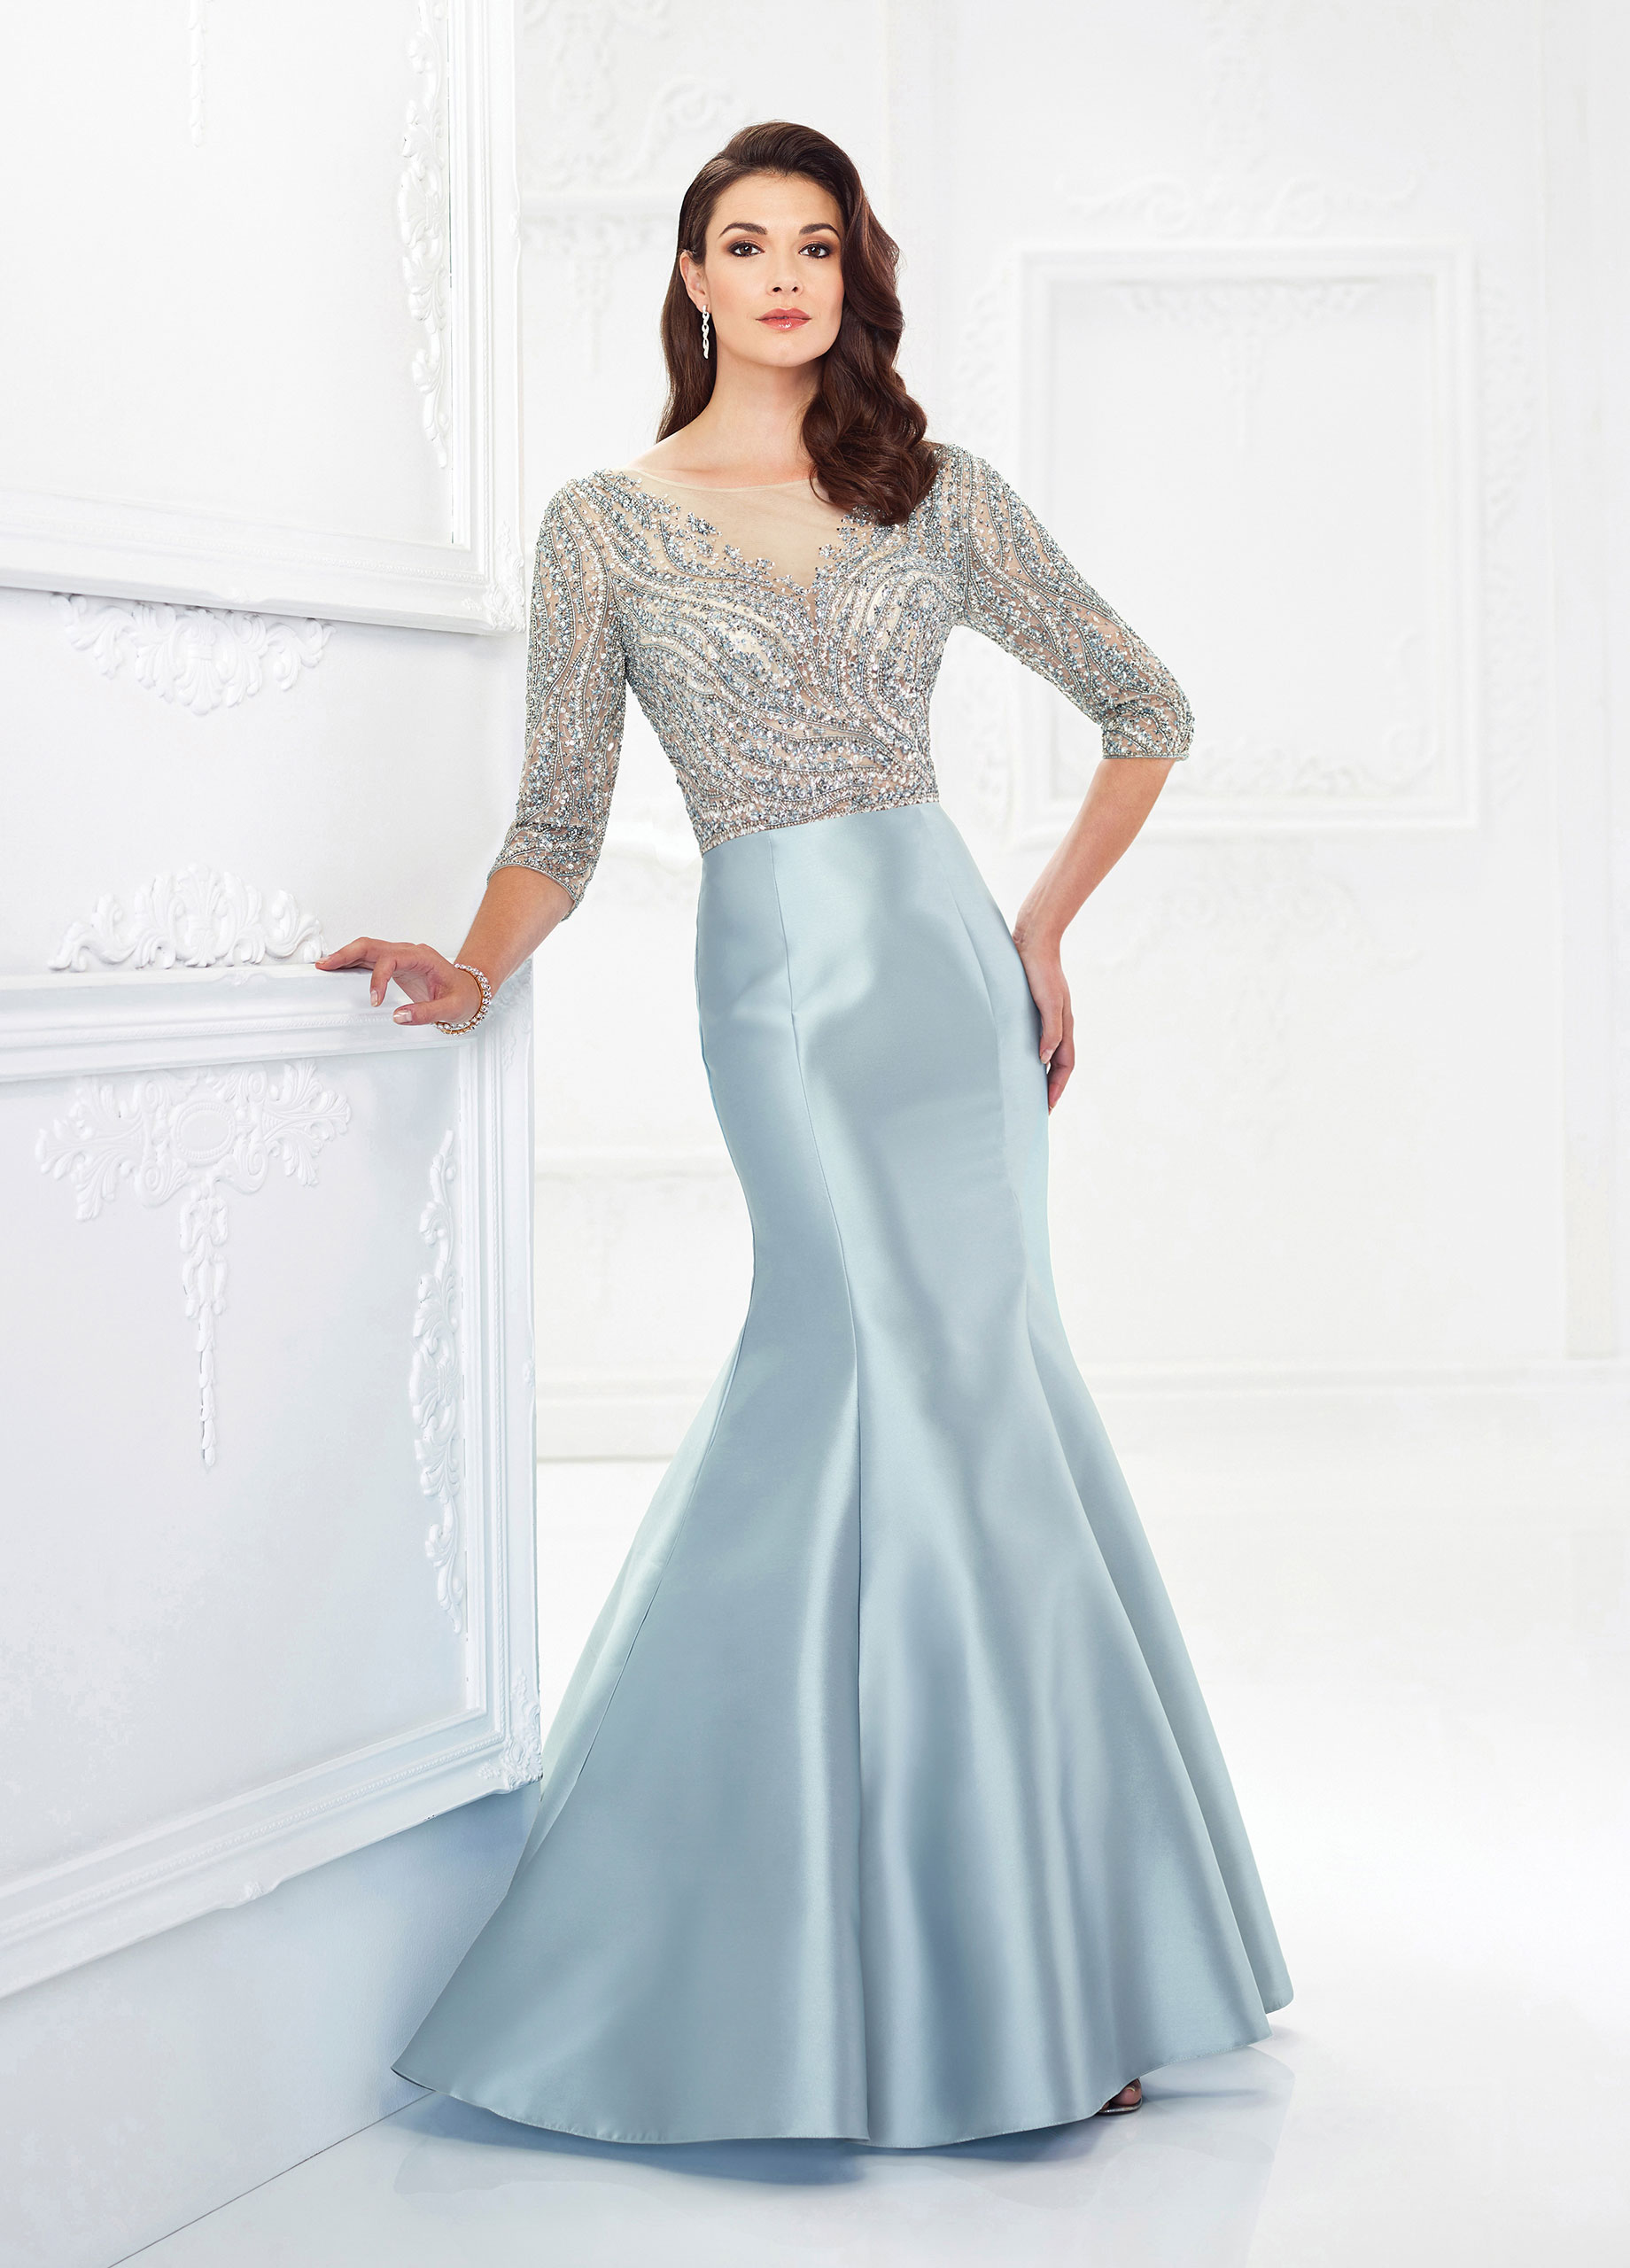 ae9d6029dcf It s impossible not to feel glamorous and gorgeous in this Mikado mermaid  gown with hand-beaded tulle three-quarter sleeves